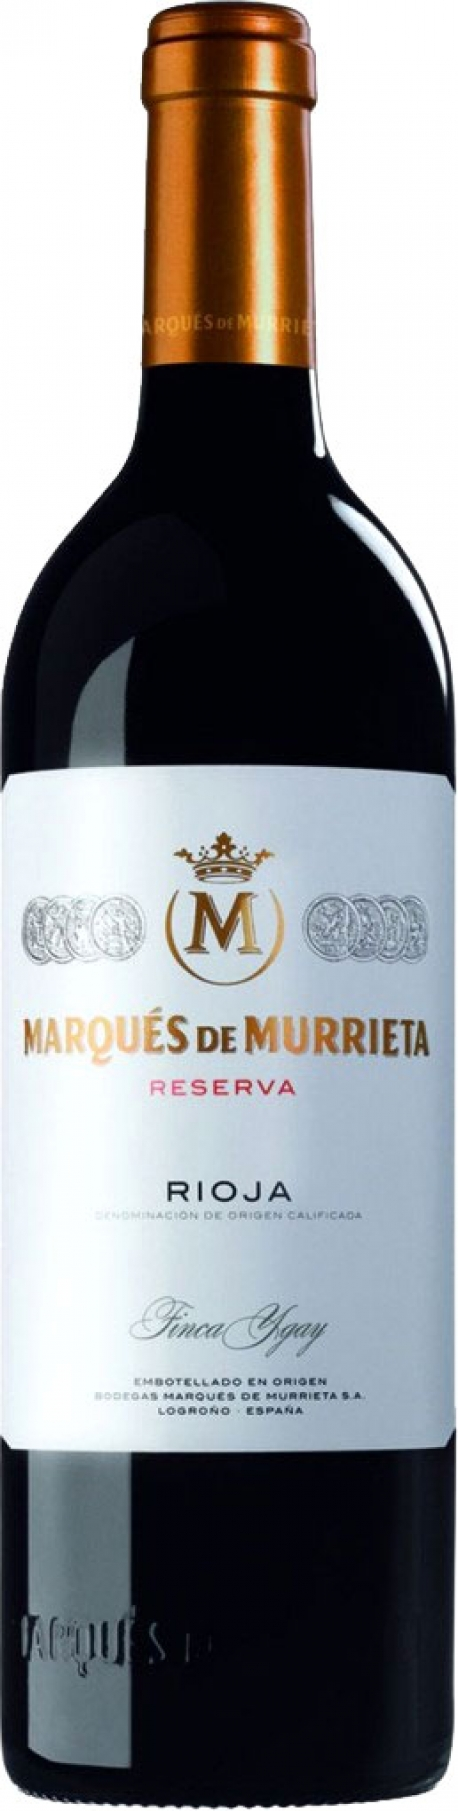 Marques de Murrieta - Reserva 2015 (75cl Bottle)